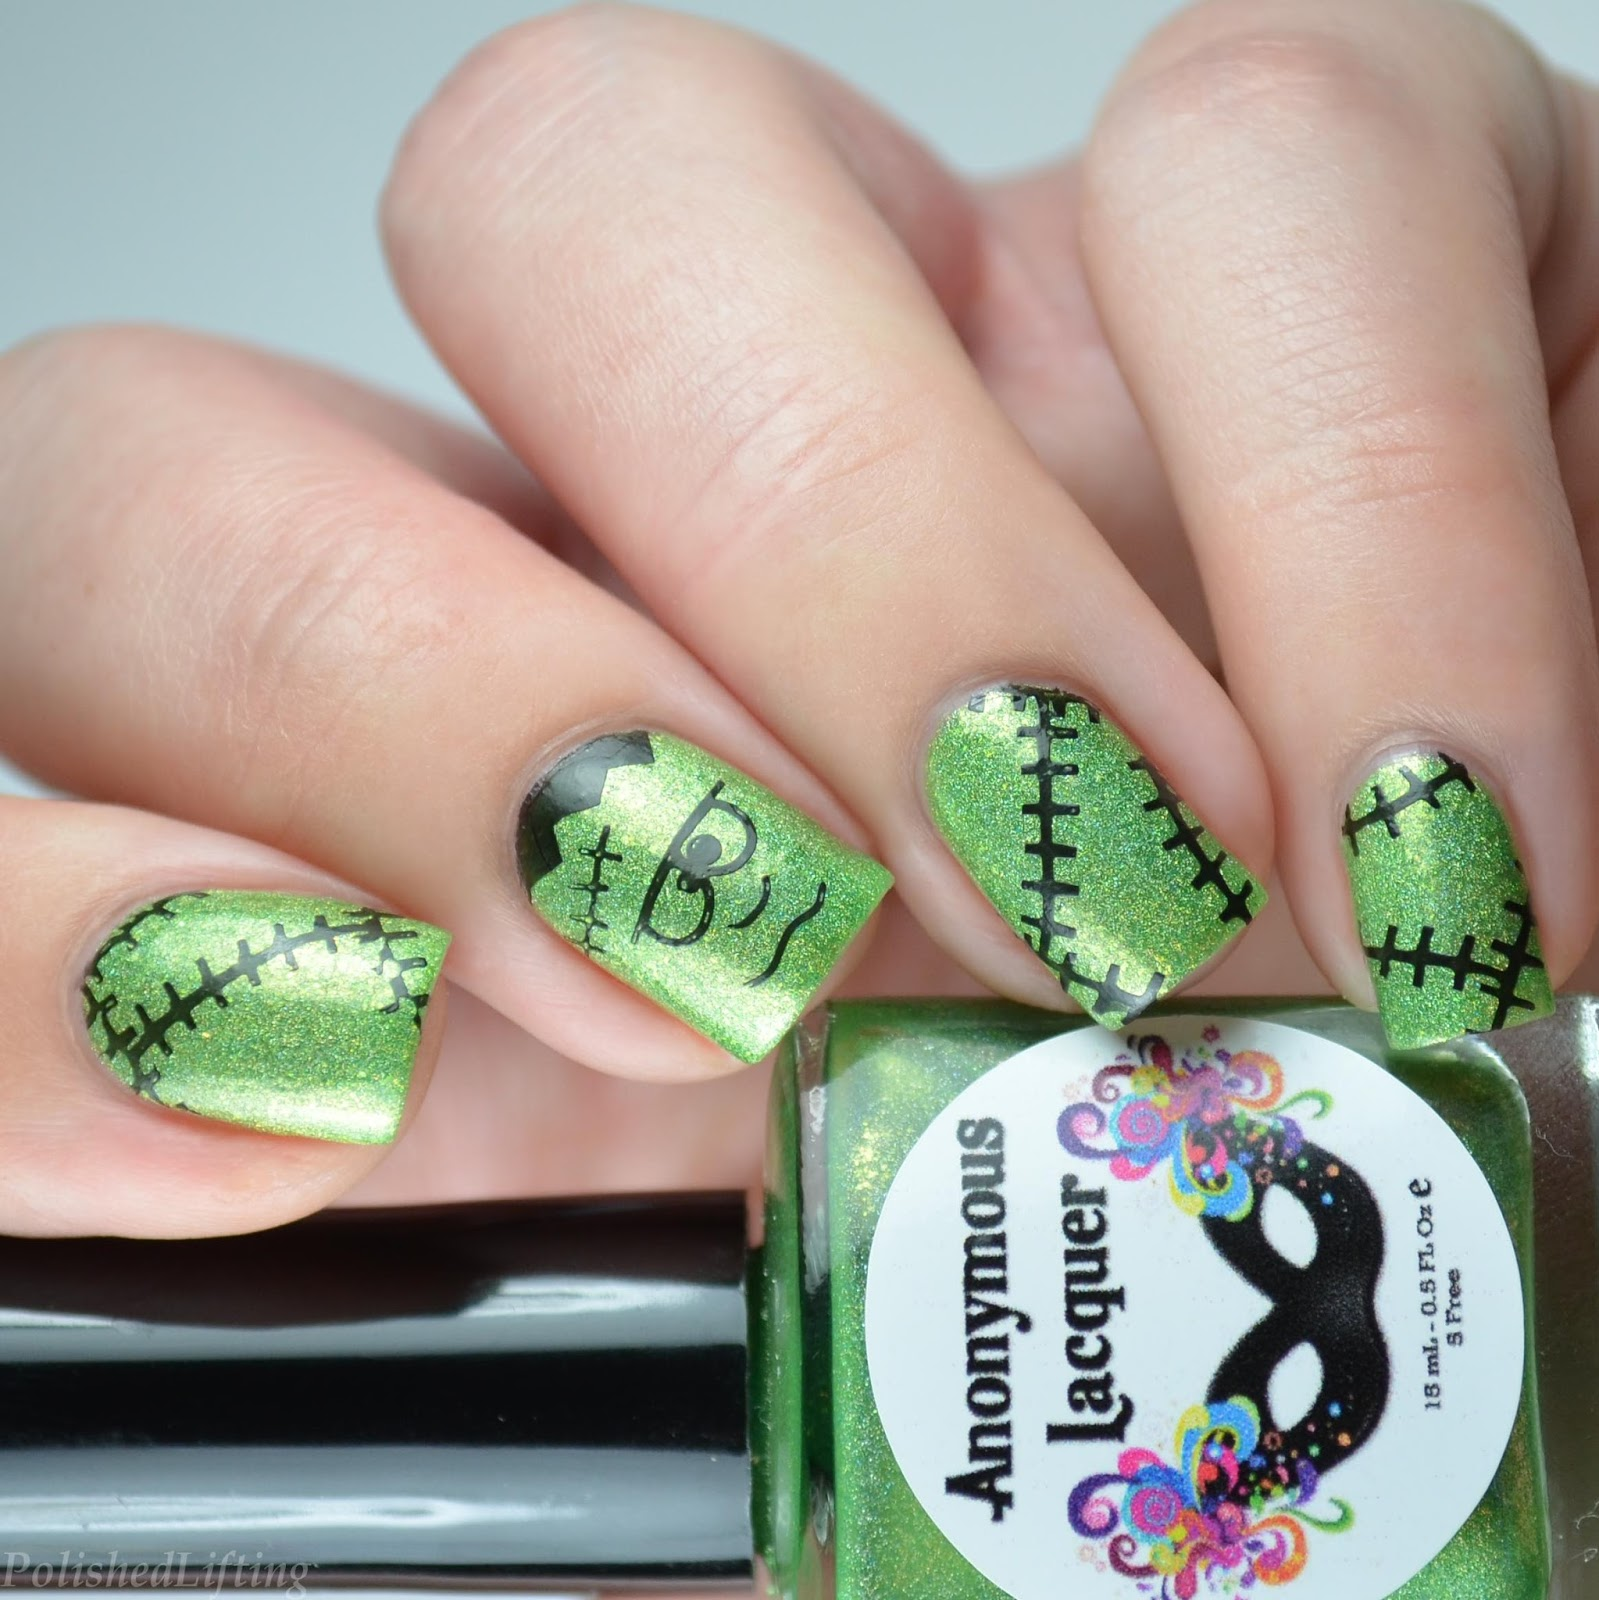 Polished Lifting Frankenstein Halloween Nail Art Featuring